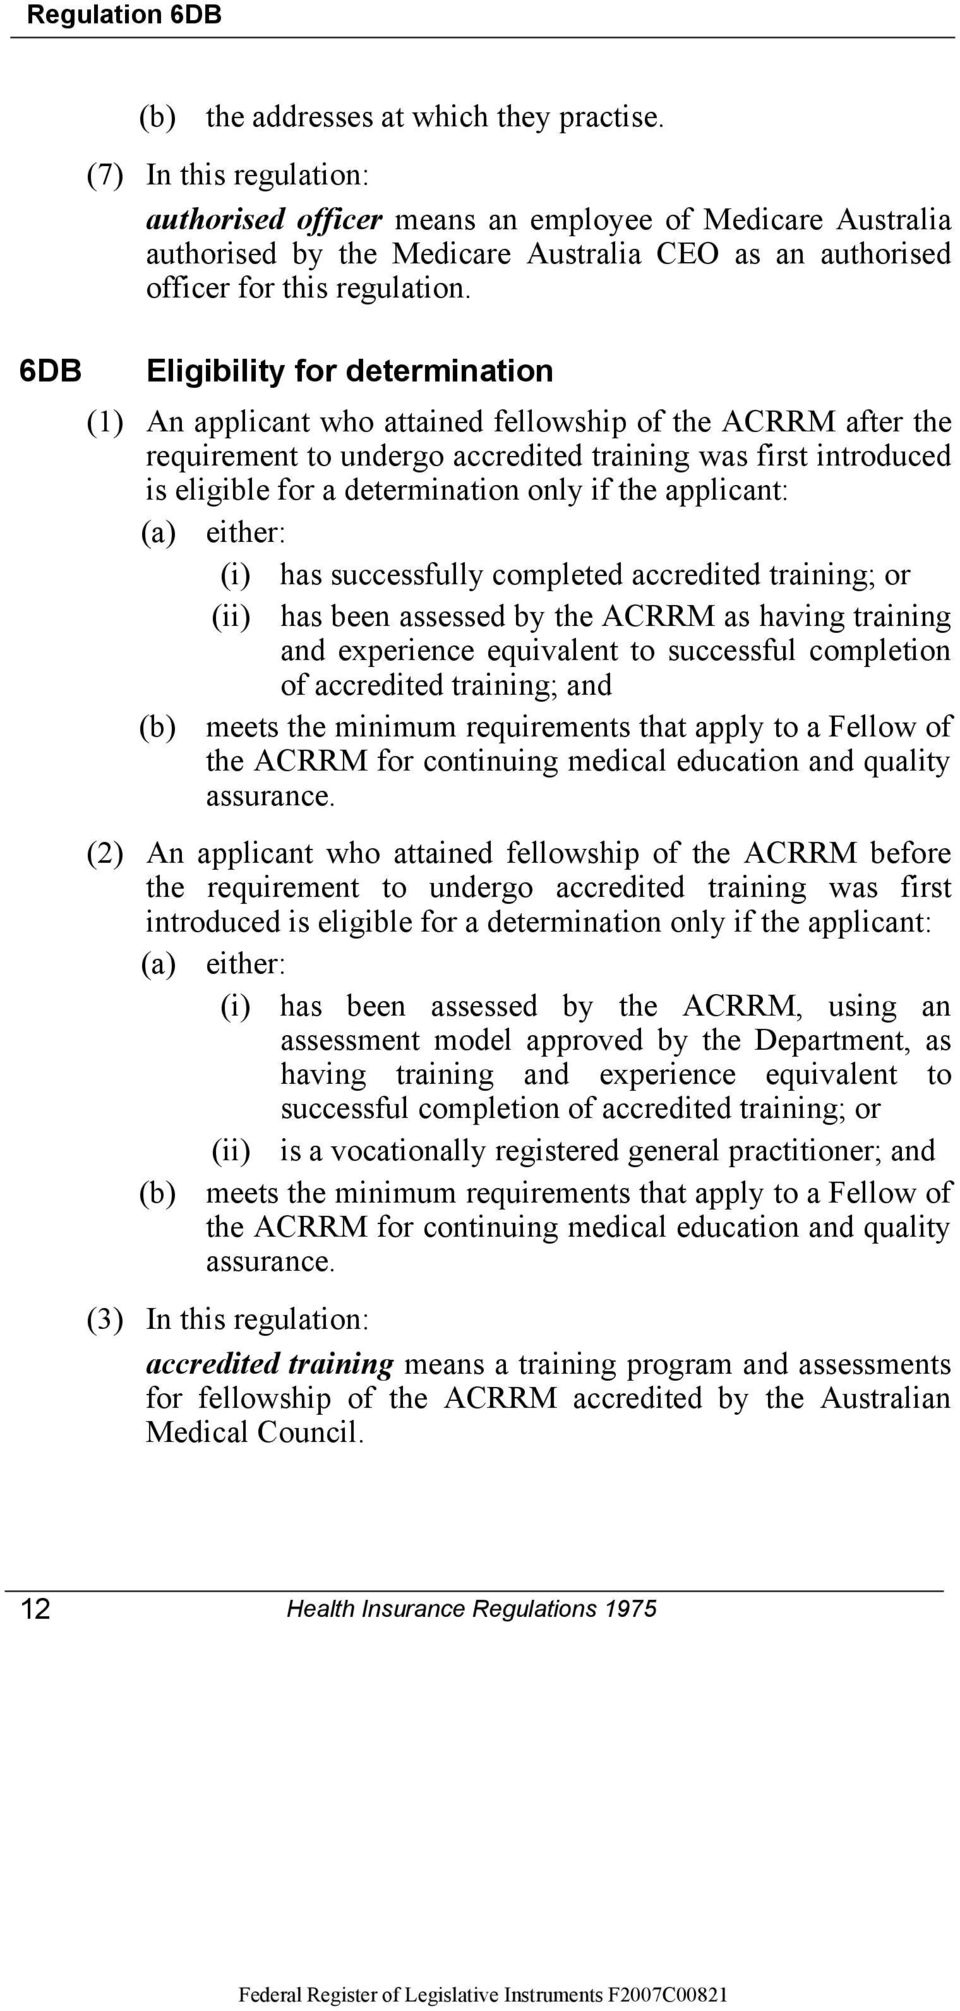 6DB Eligibility for determination (1) An applicant who attained fellowship of the ACRRM after the requirement to undergo accredited training was first introduced is eligible for a determination only